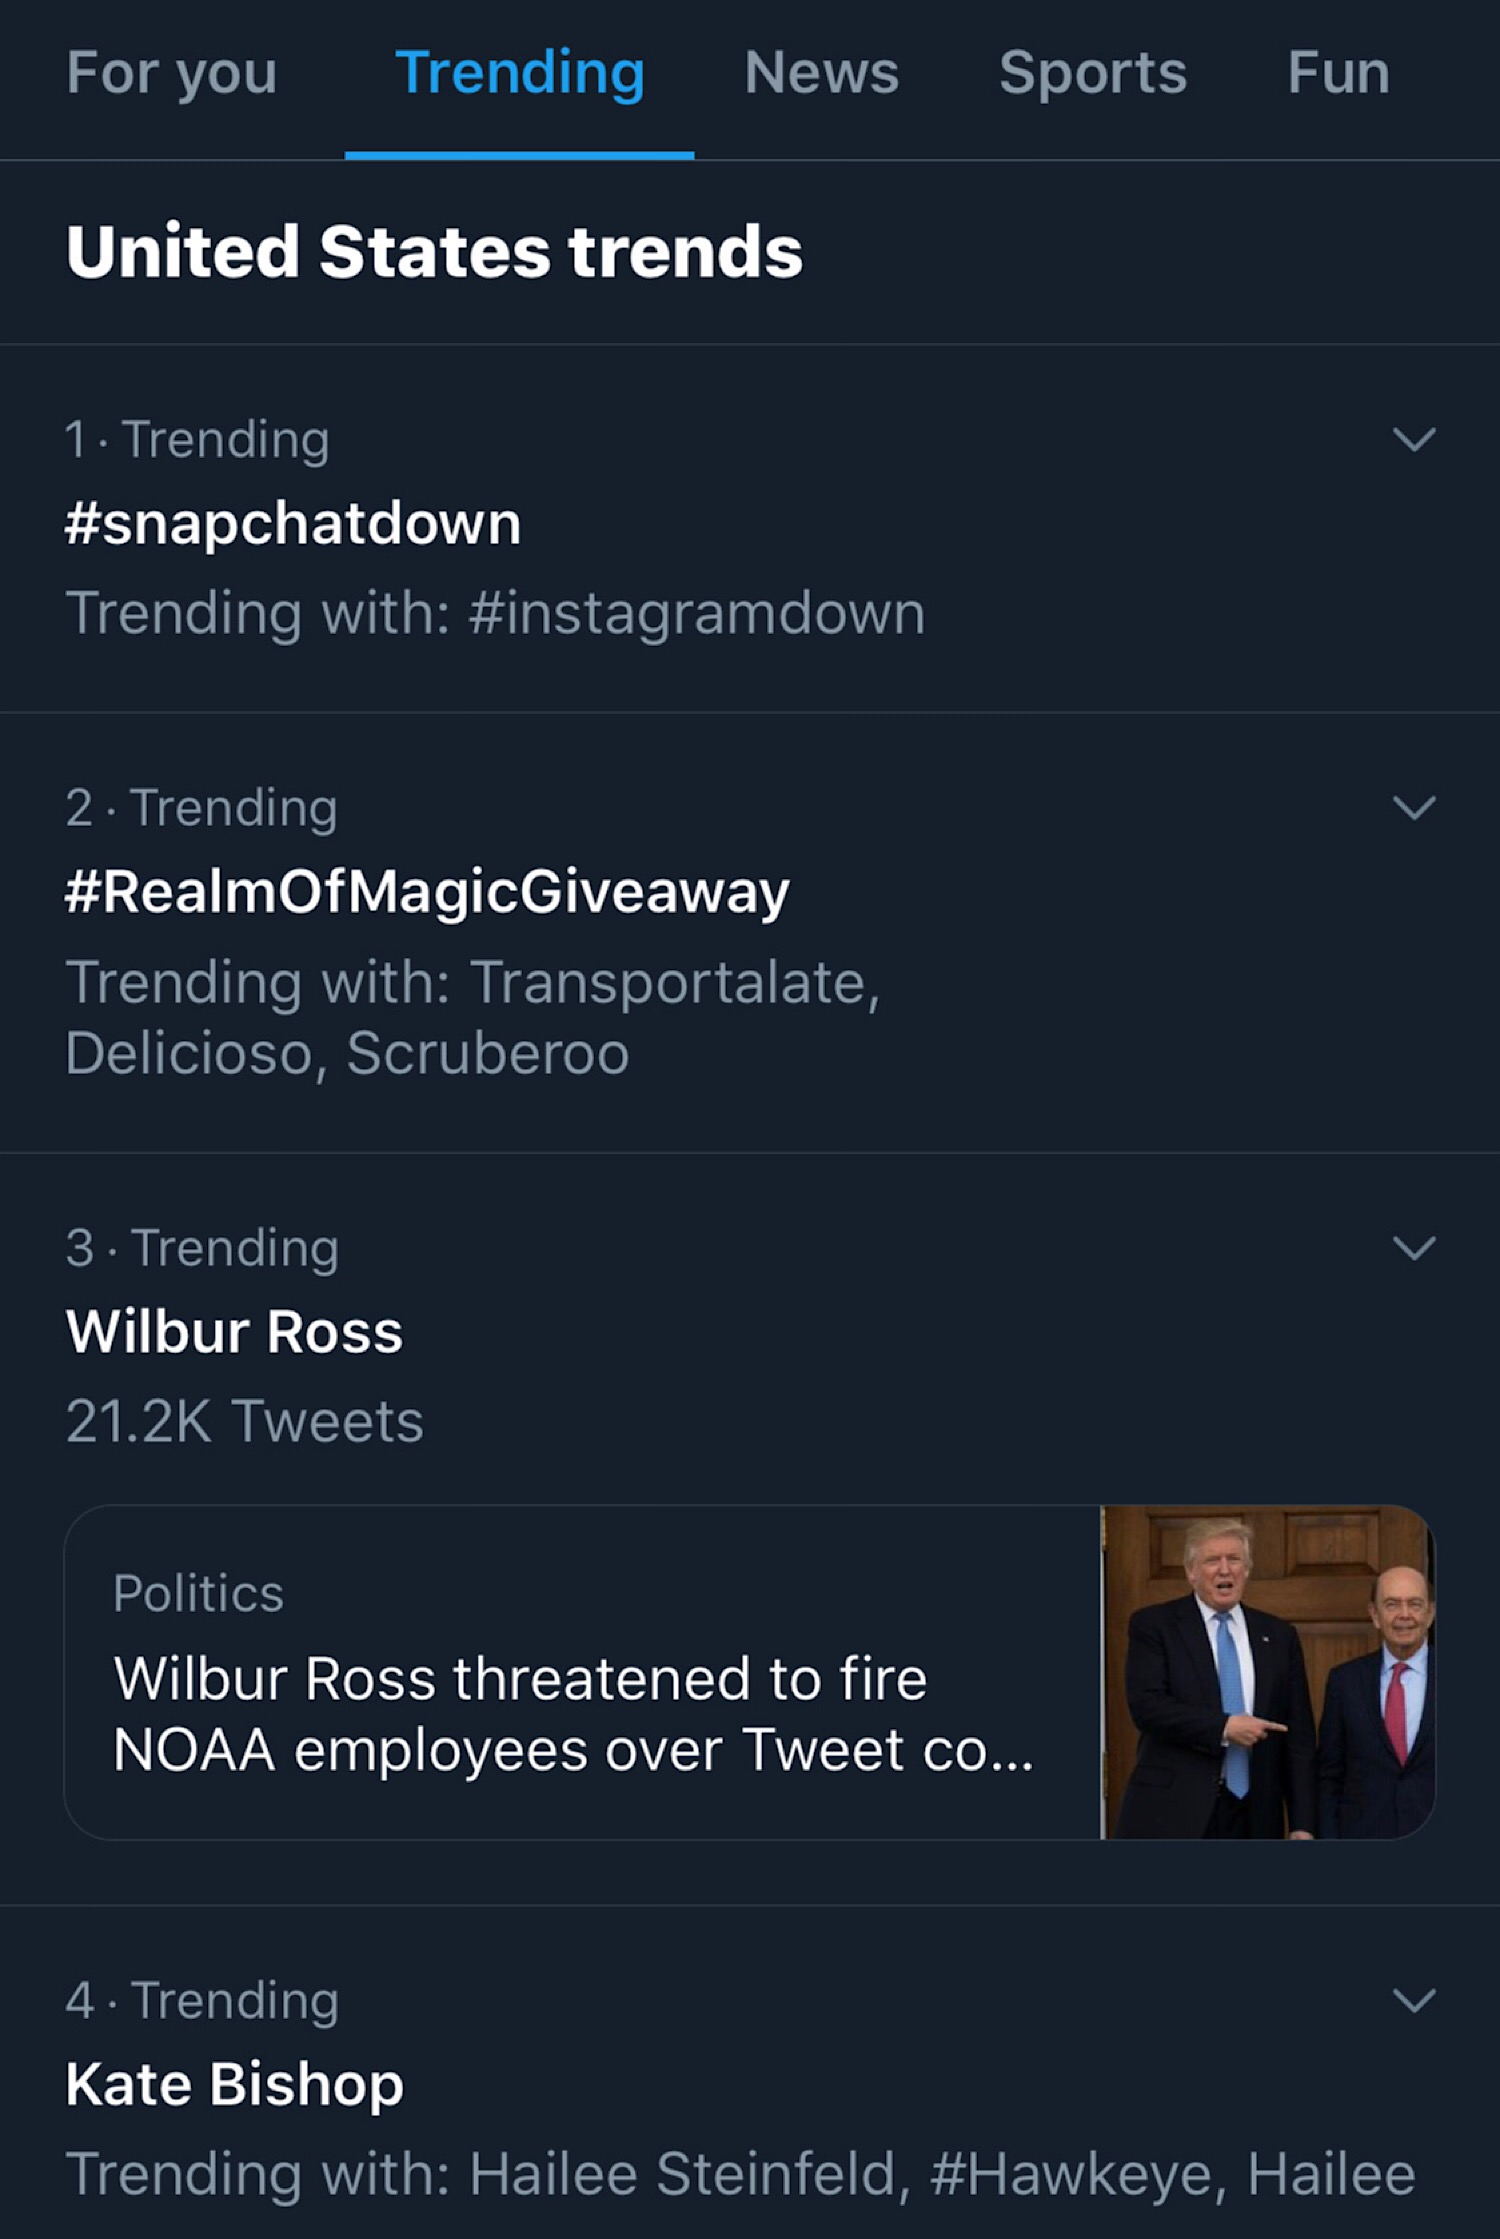 #snapchatdown trending number one on Twitter in the United States.